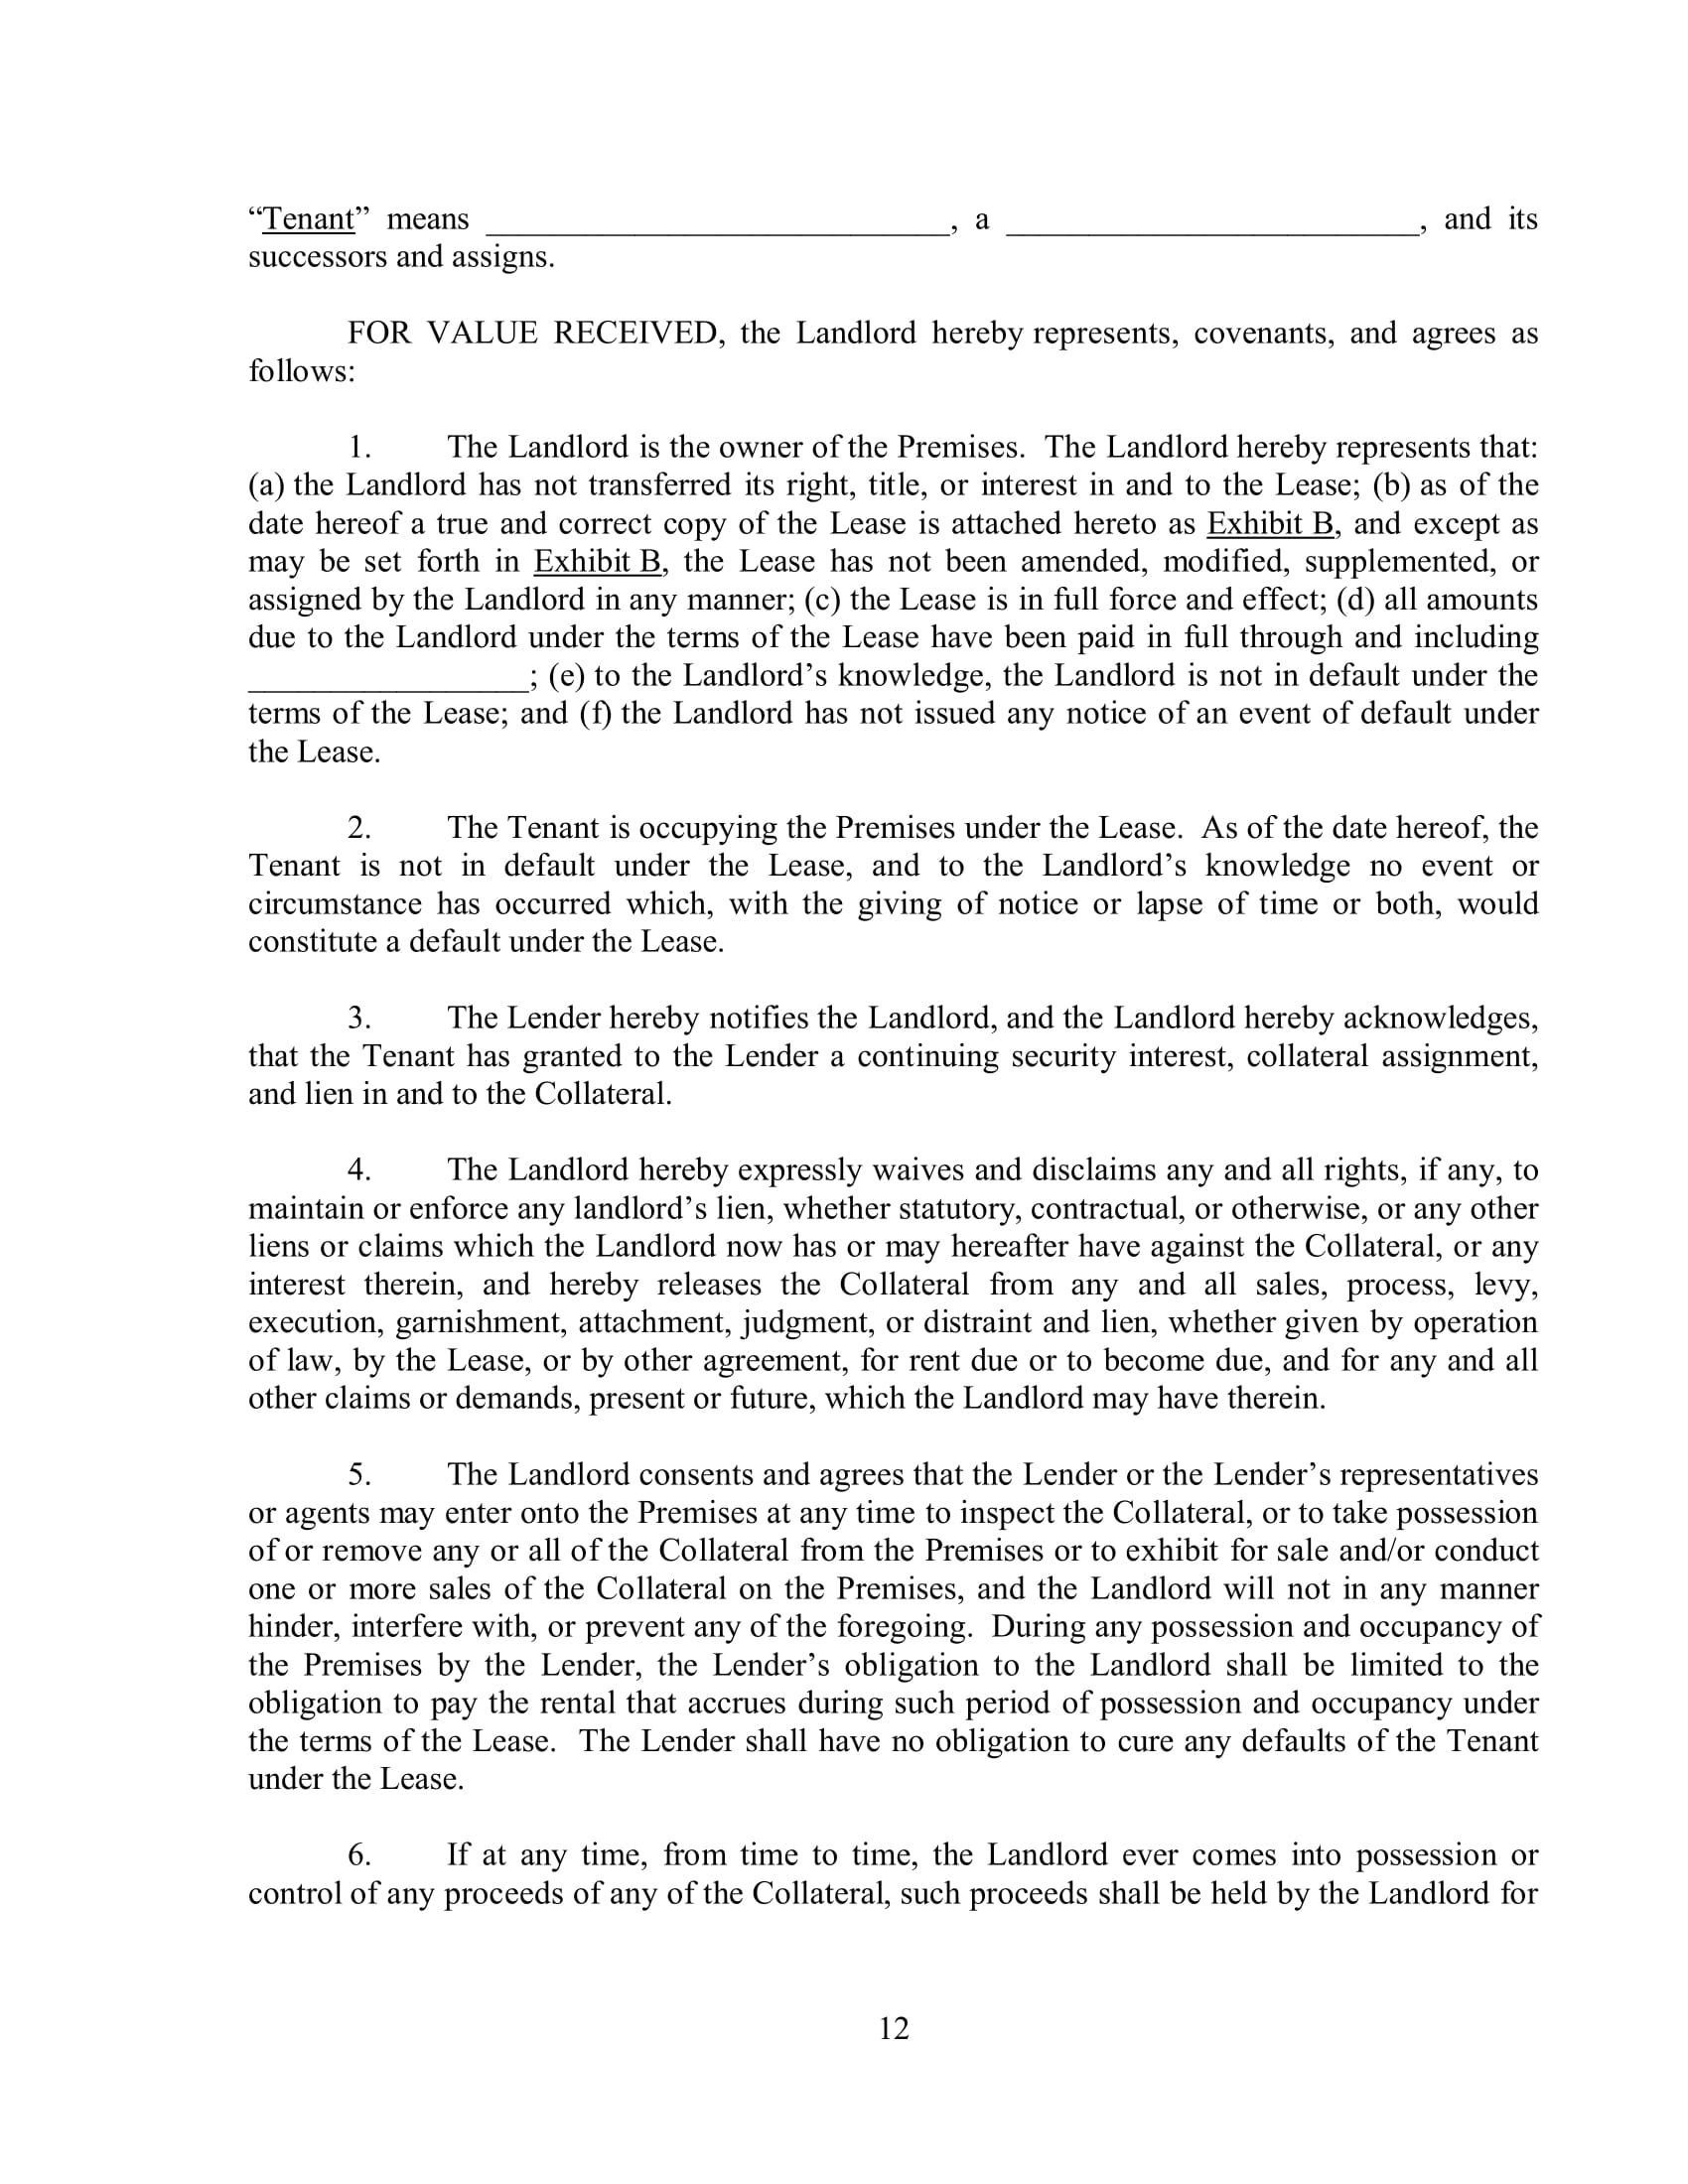 landlord subordination agreement contract form 13